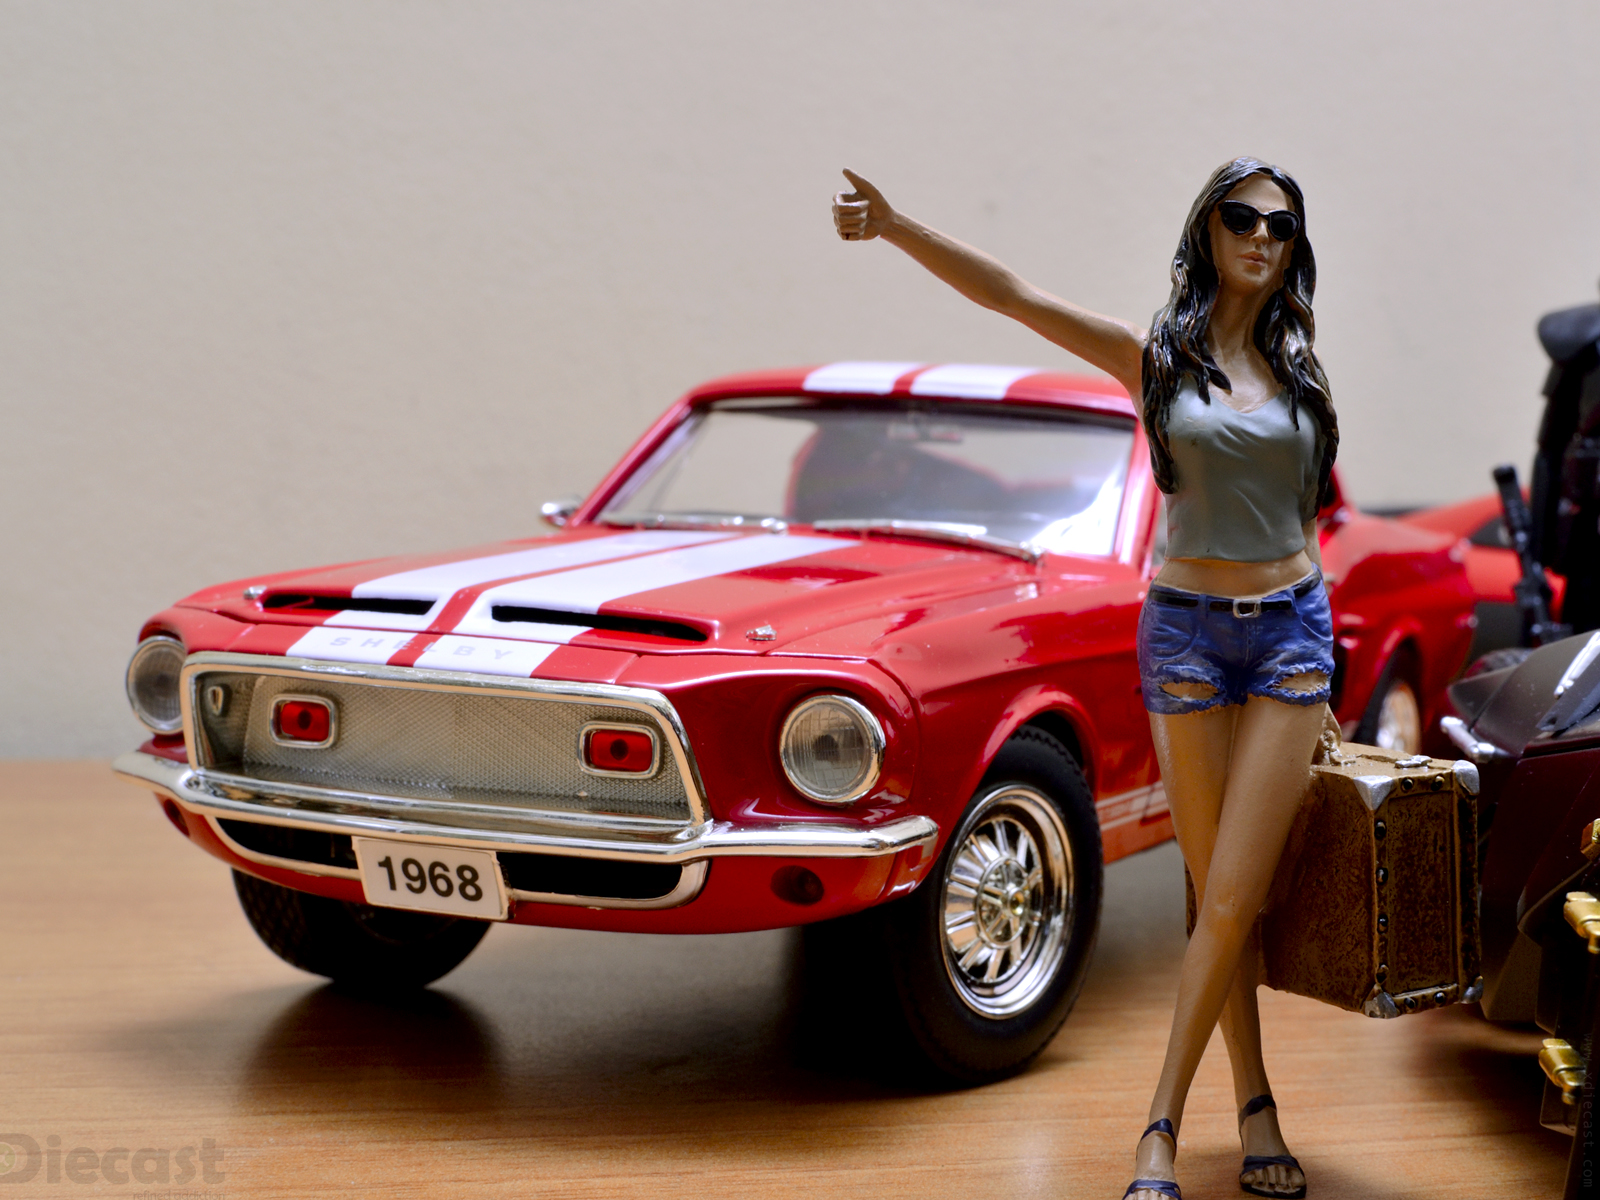 Diecast Car & Bike Collection of Year 2018 – xDiecast